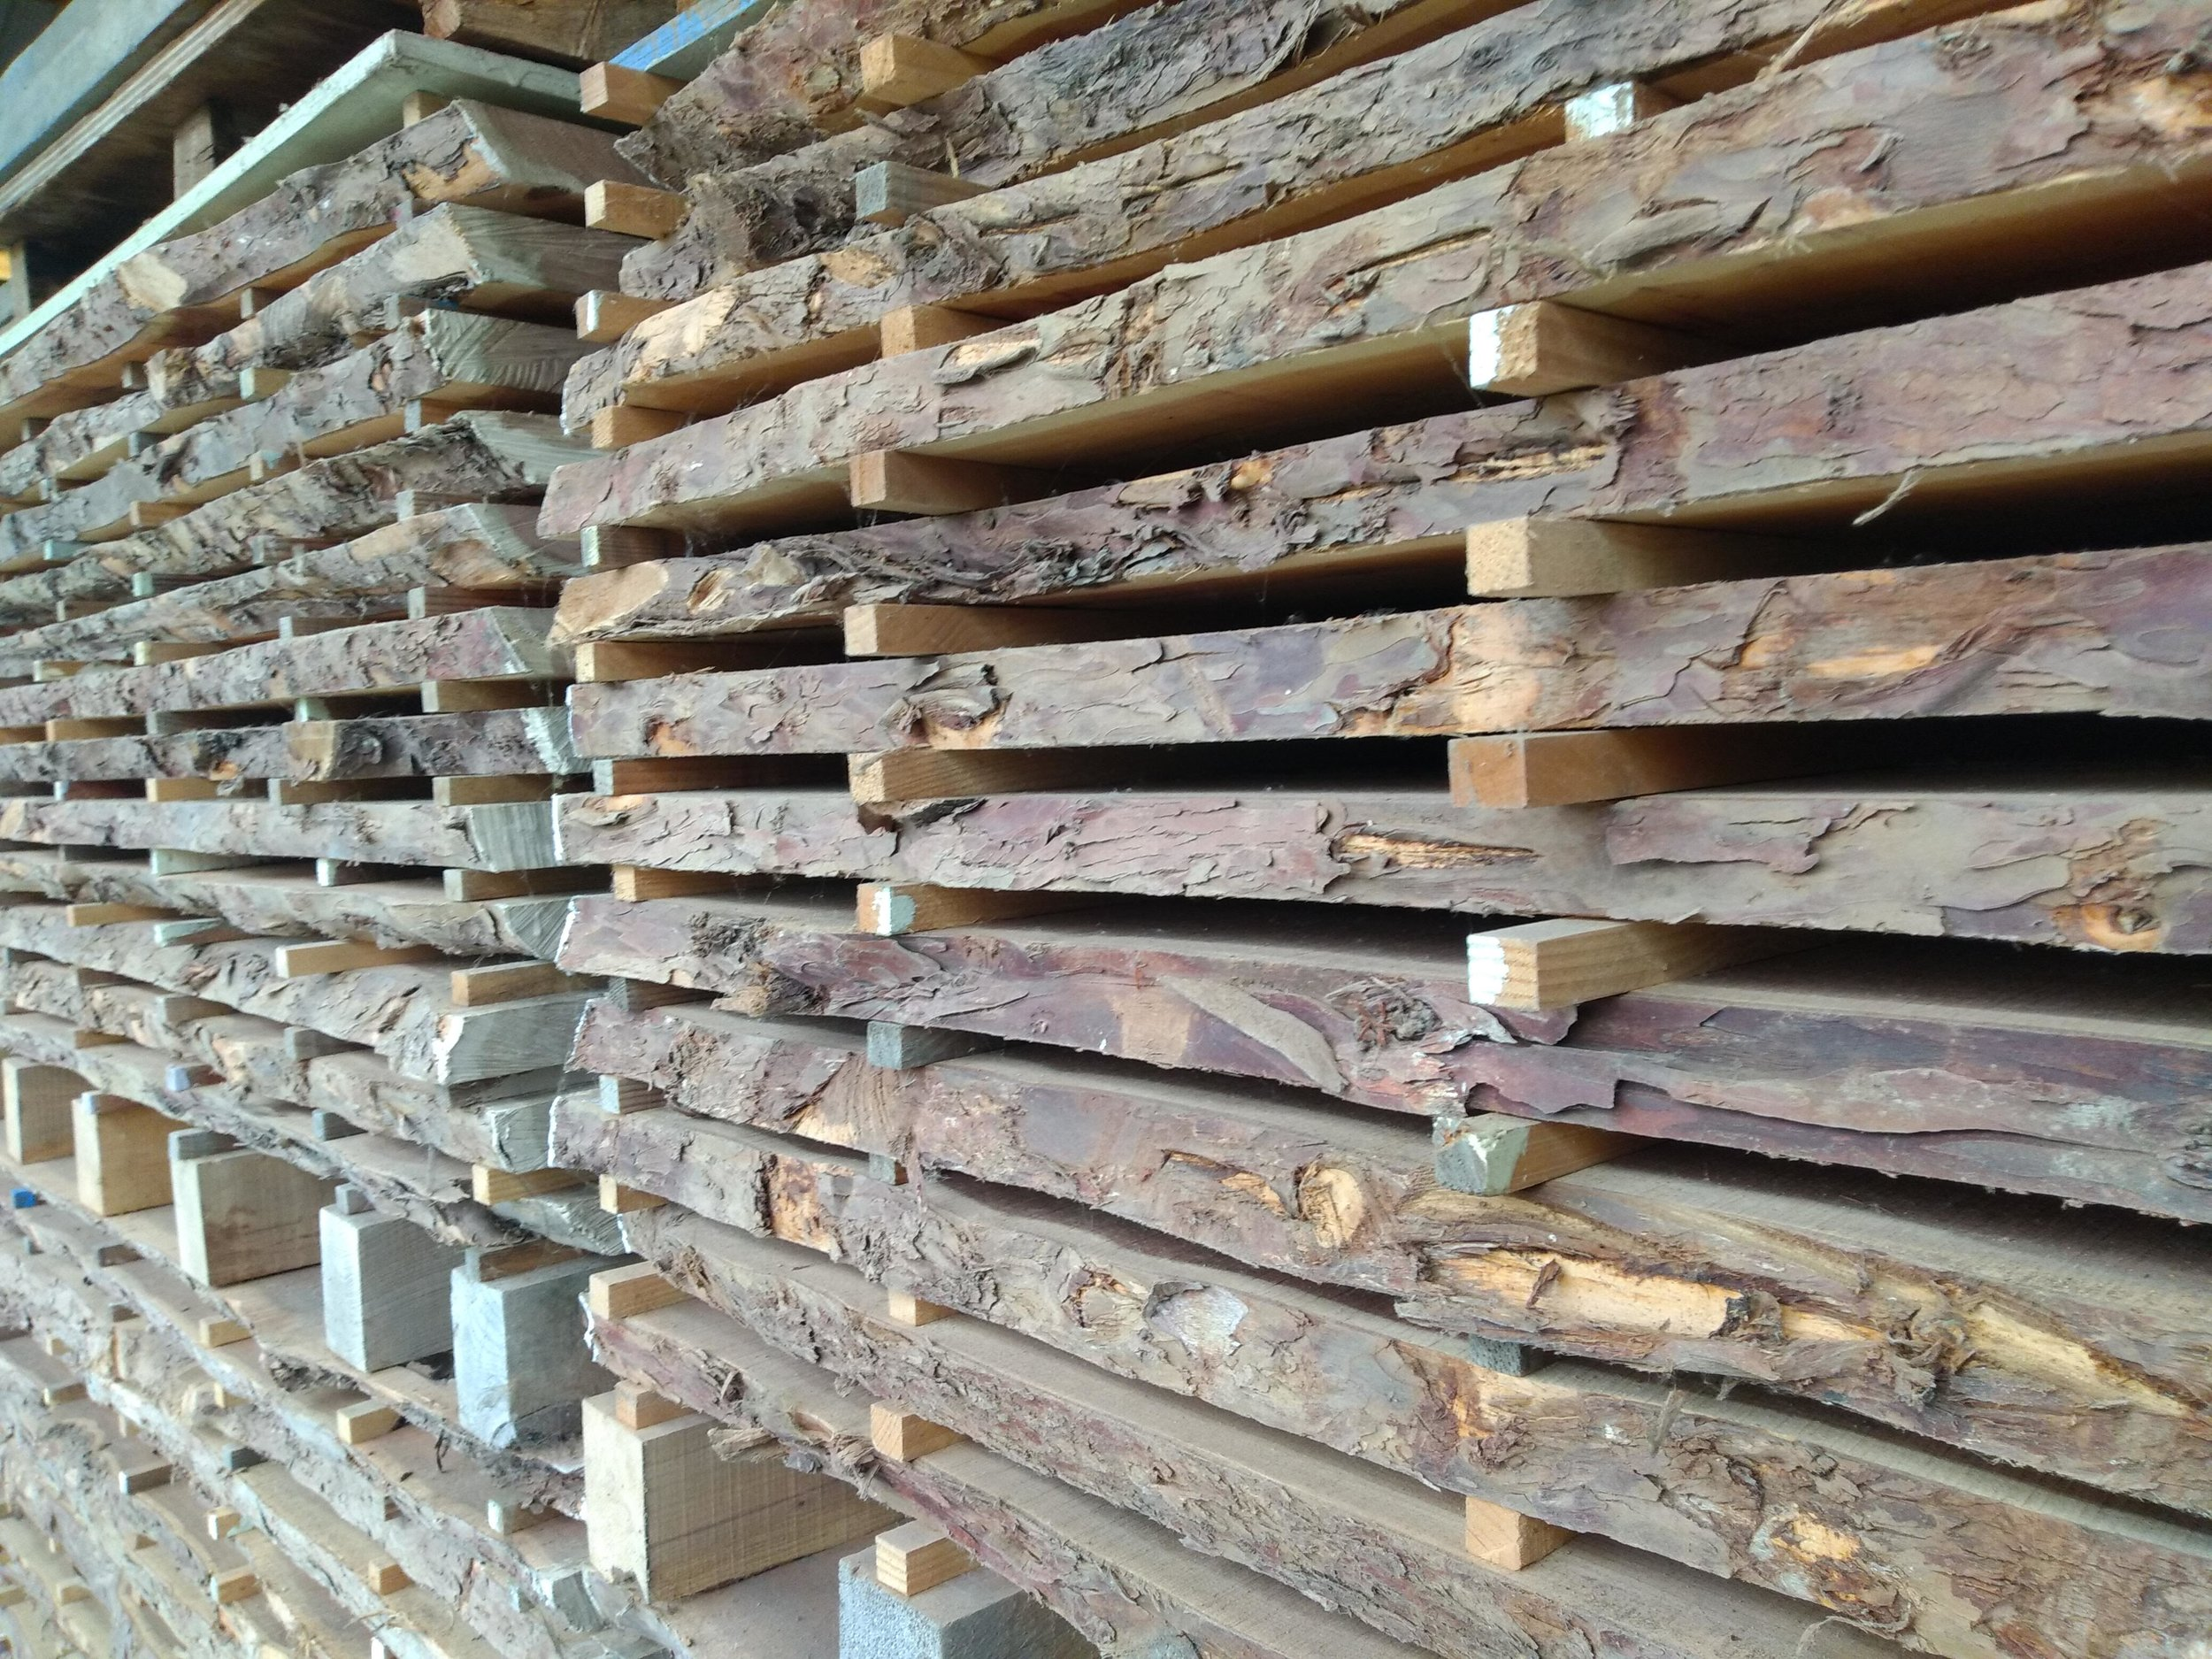 Timber stacked for selection for custom hand crafted bespoke furniture design